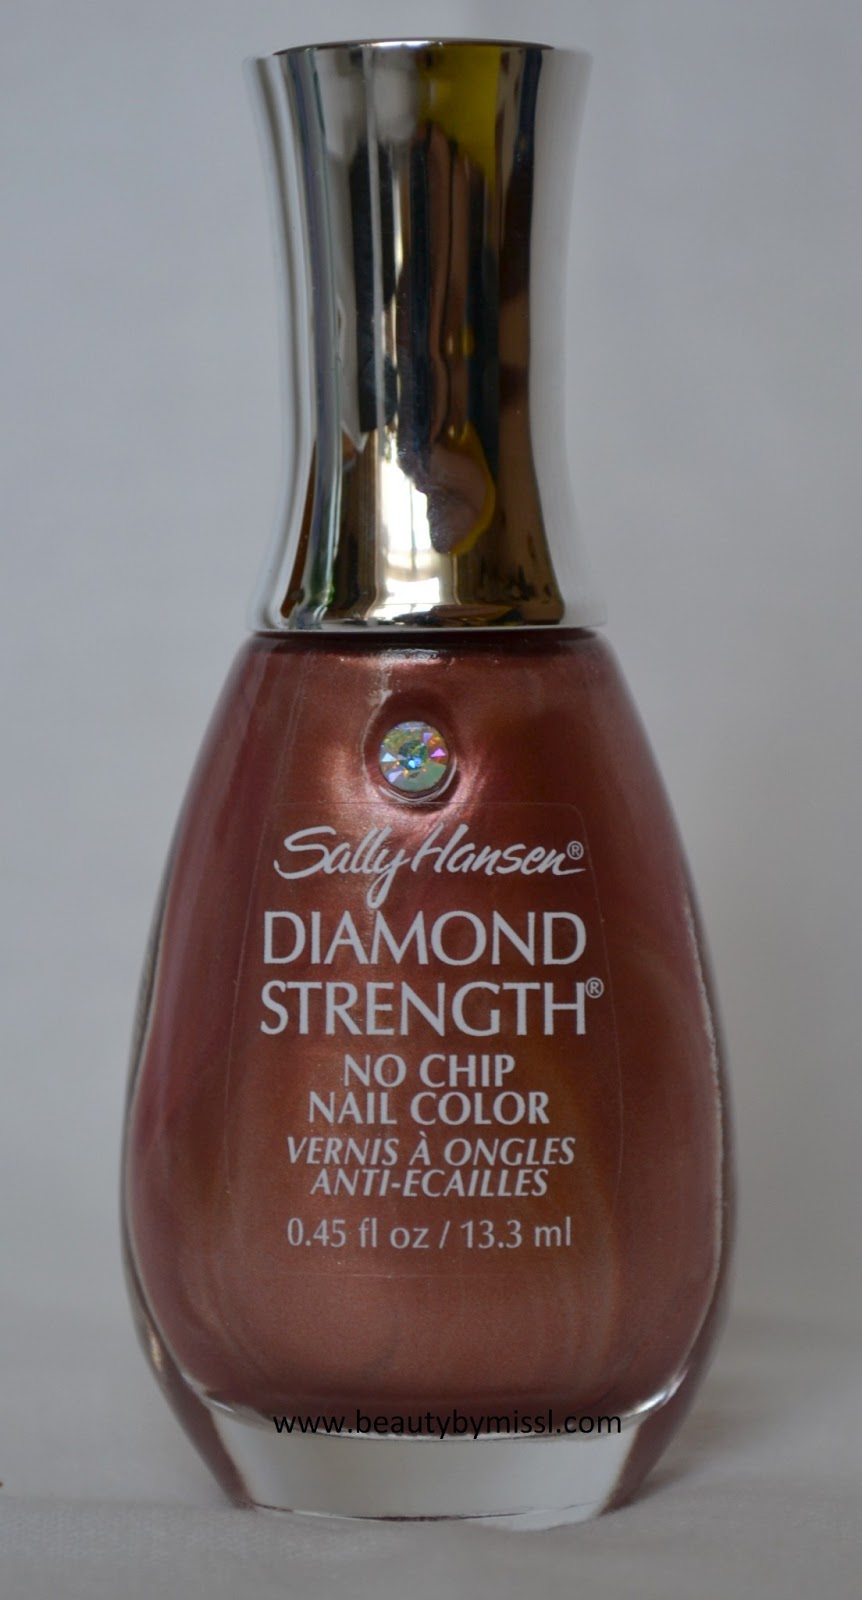 Diamond Strength nail polish